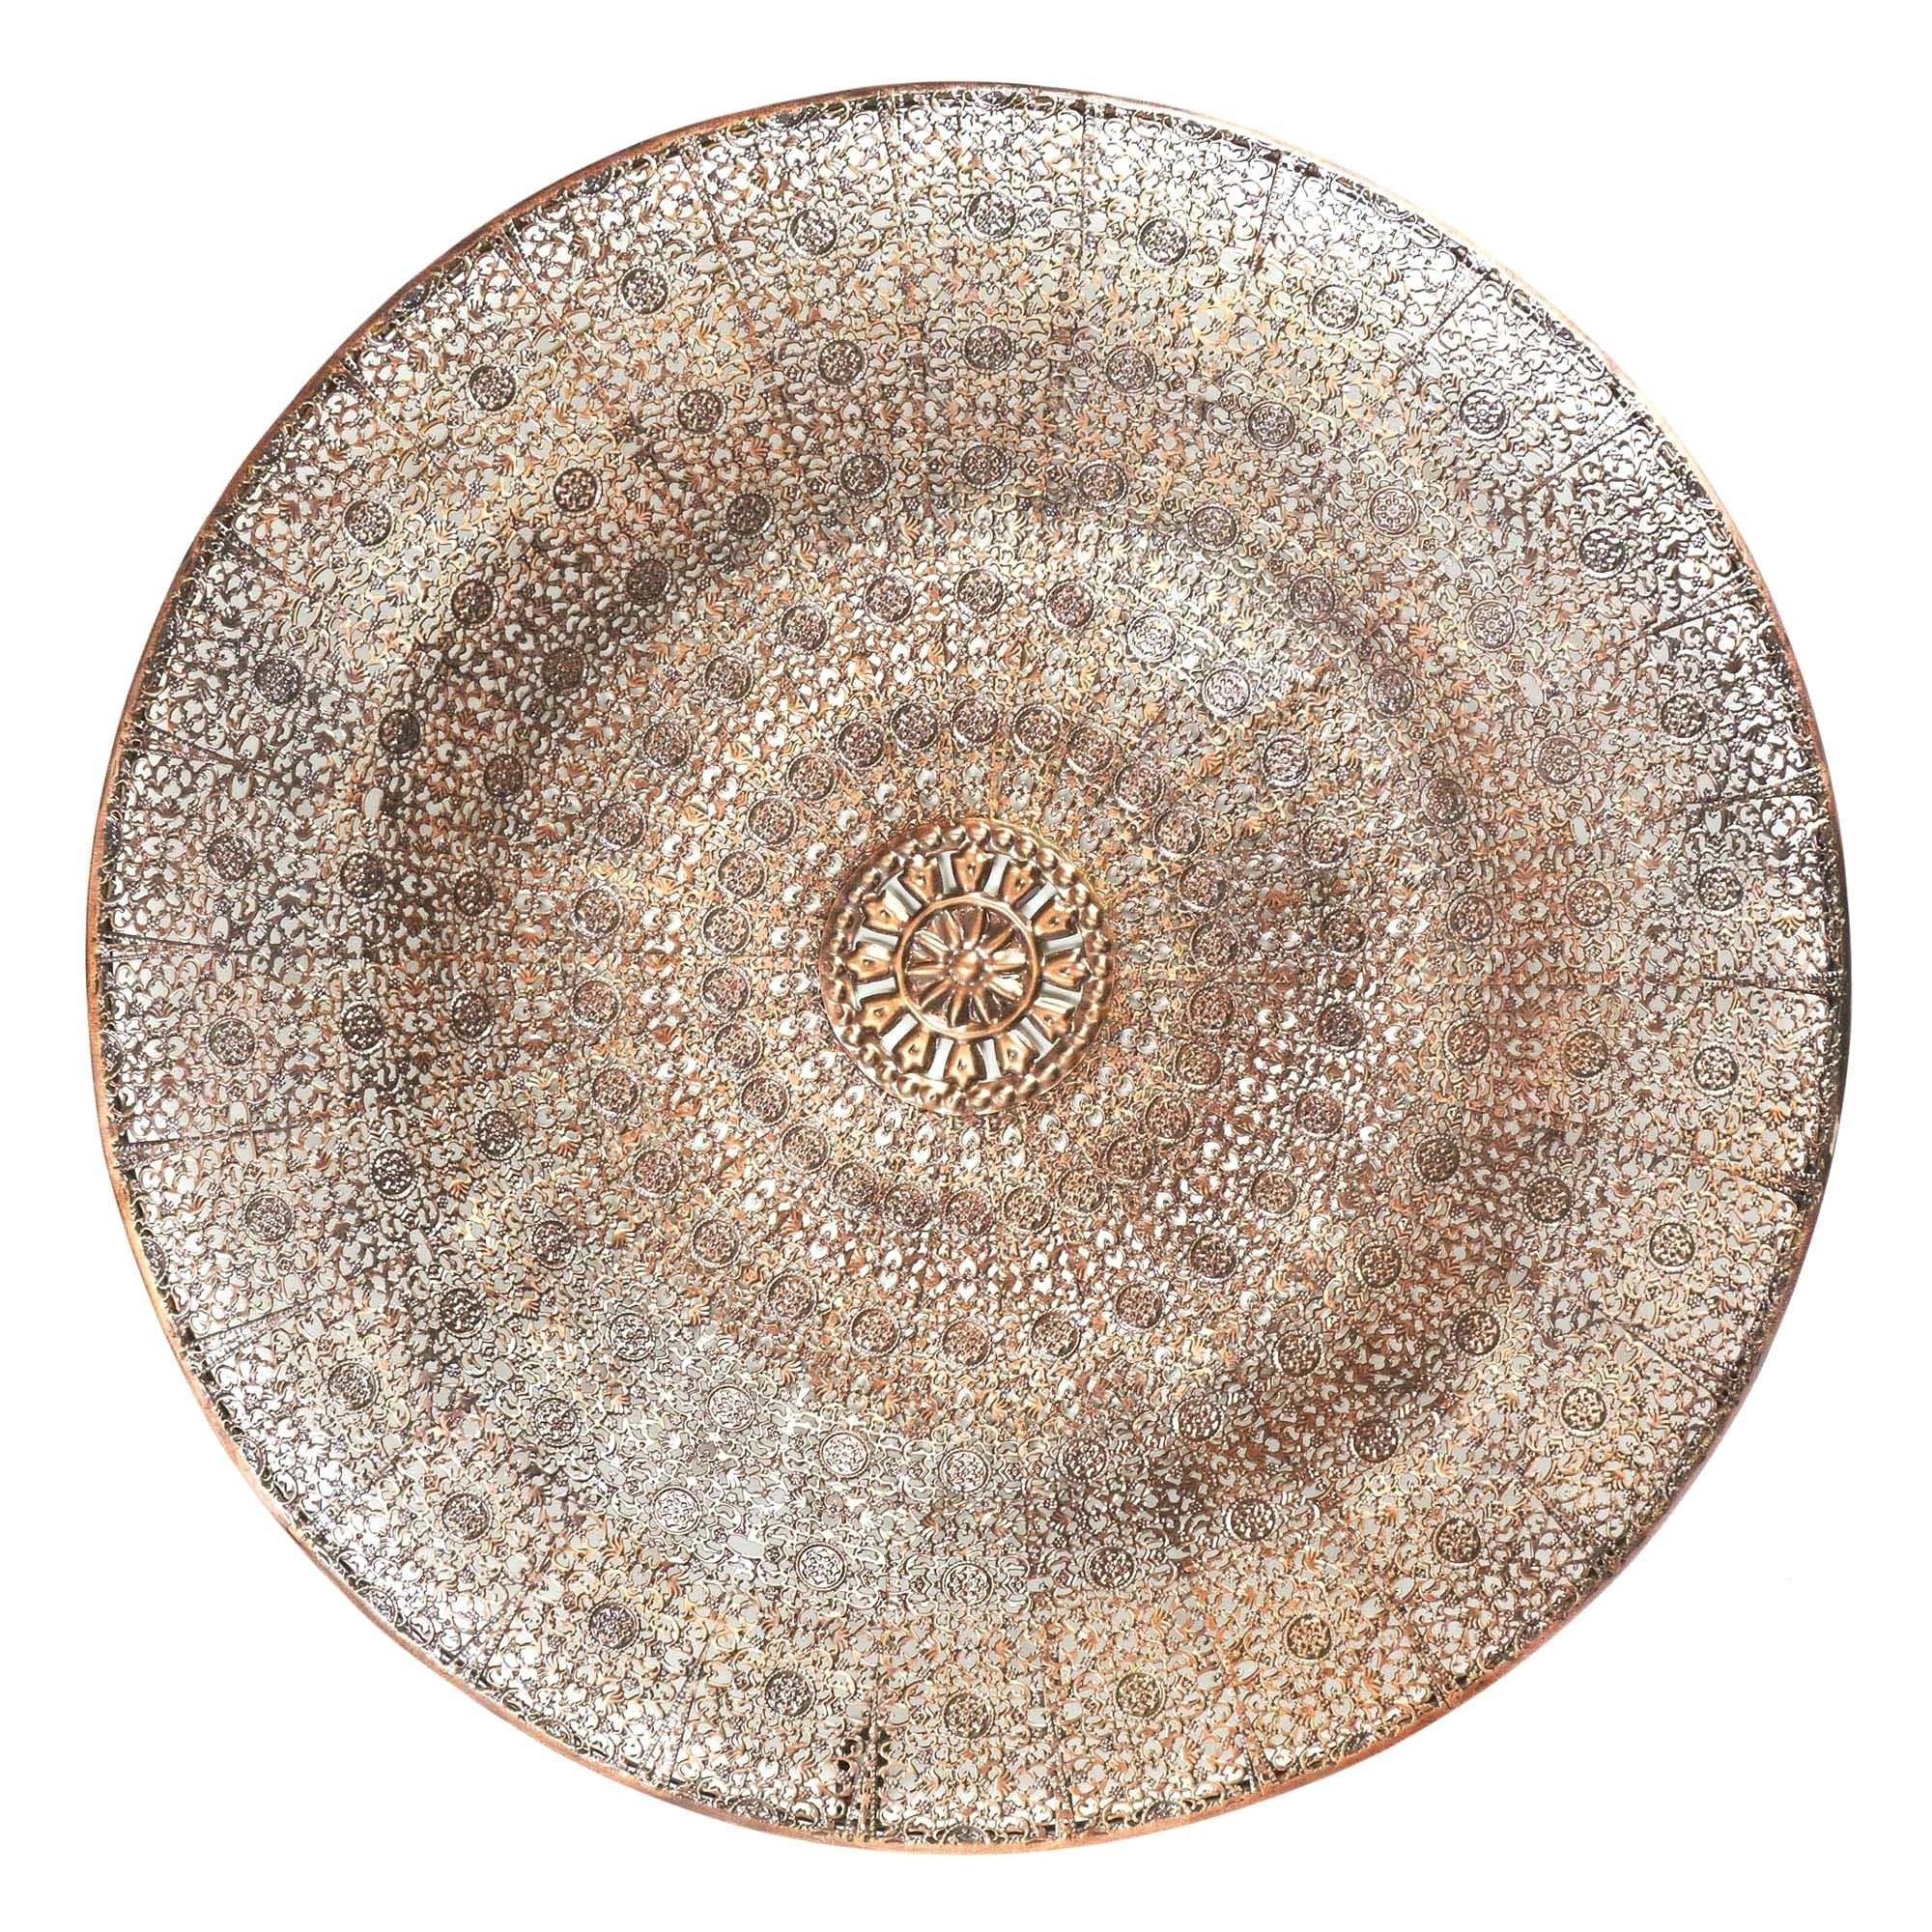 Moroccan Wall Art Silver Dish Wall Art Moroccan Style Metal Wall Art With Regard To Moroccan Wall Art (View 20 of 20)